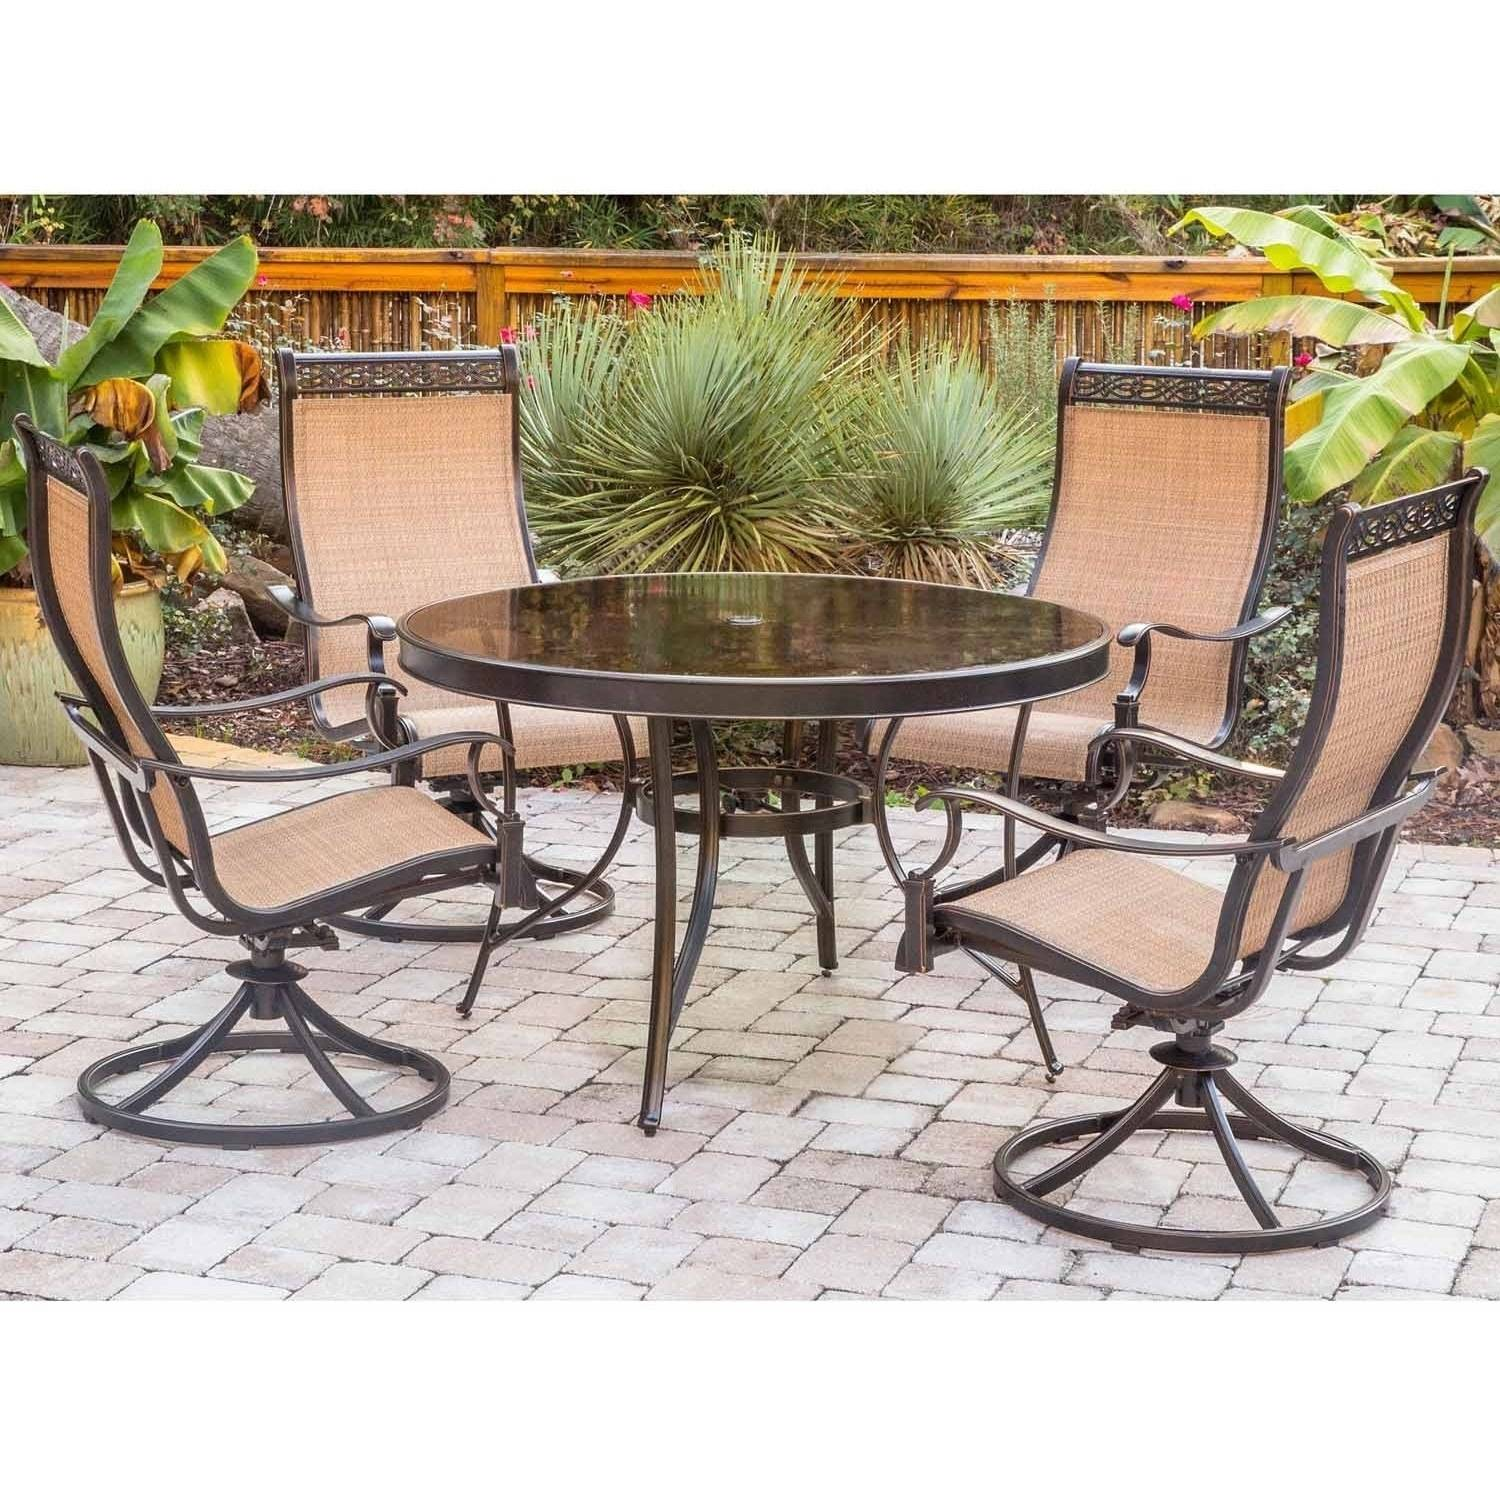 Hanover Outdoor Monaco 5-Piece Glass-Top Dining Set with Sling Swivel Rockers, Cedar